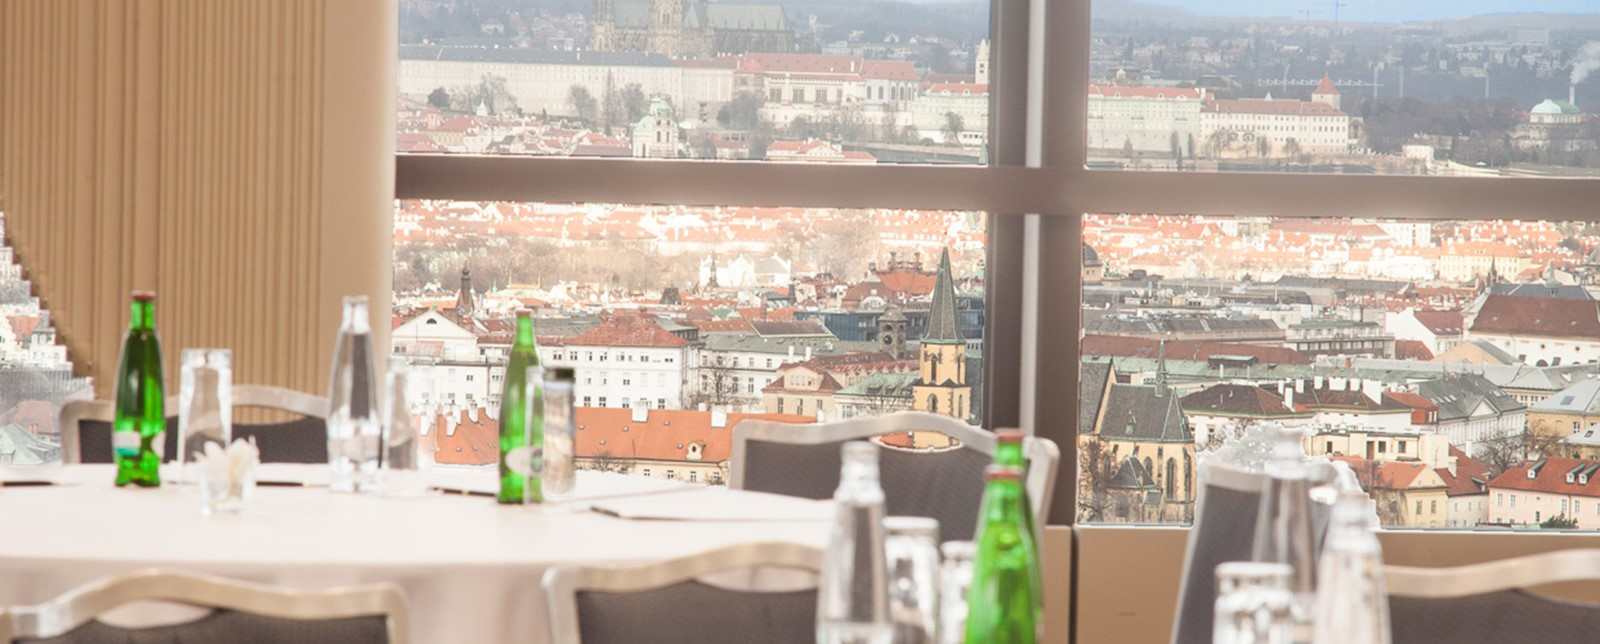 Corinthia Prague meeting view